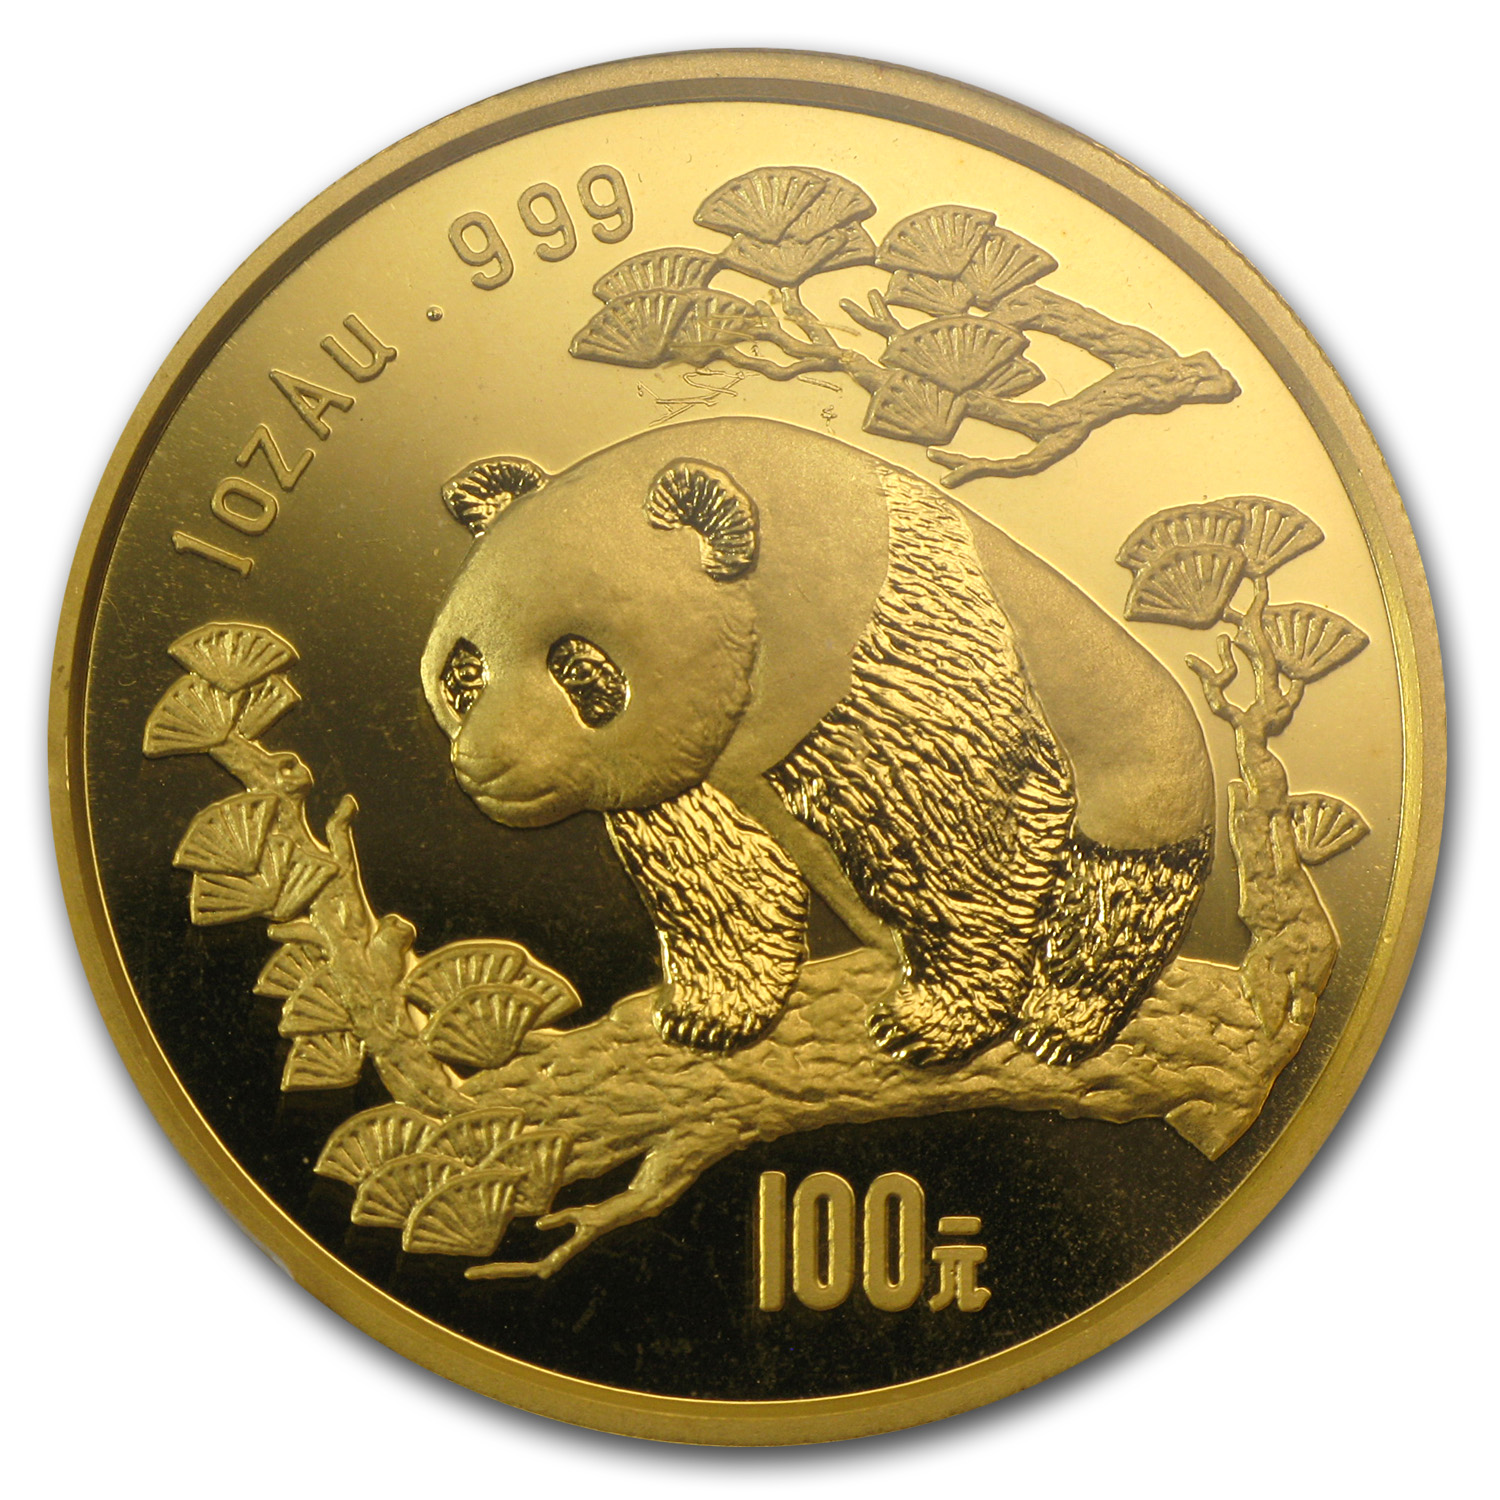 1997 1 oz Gold Chinese Panda MS-68 PCGS - Large Date